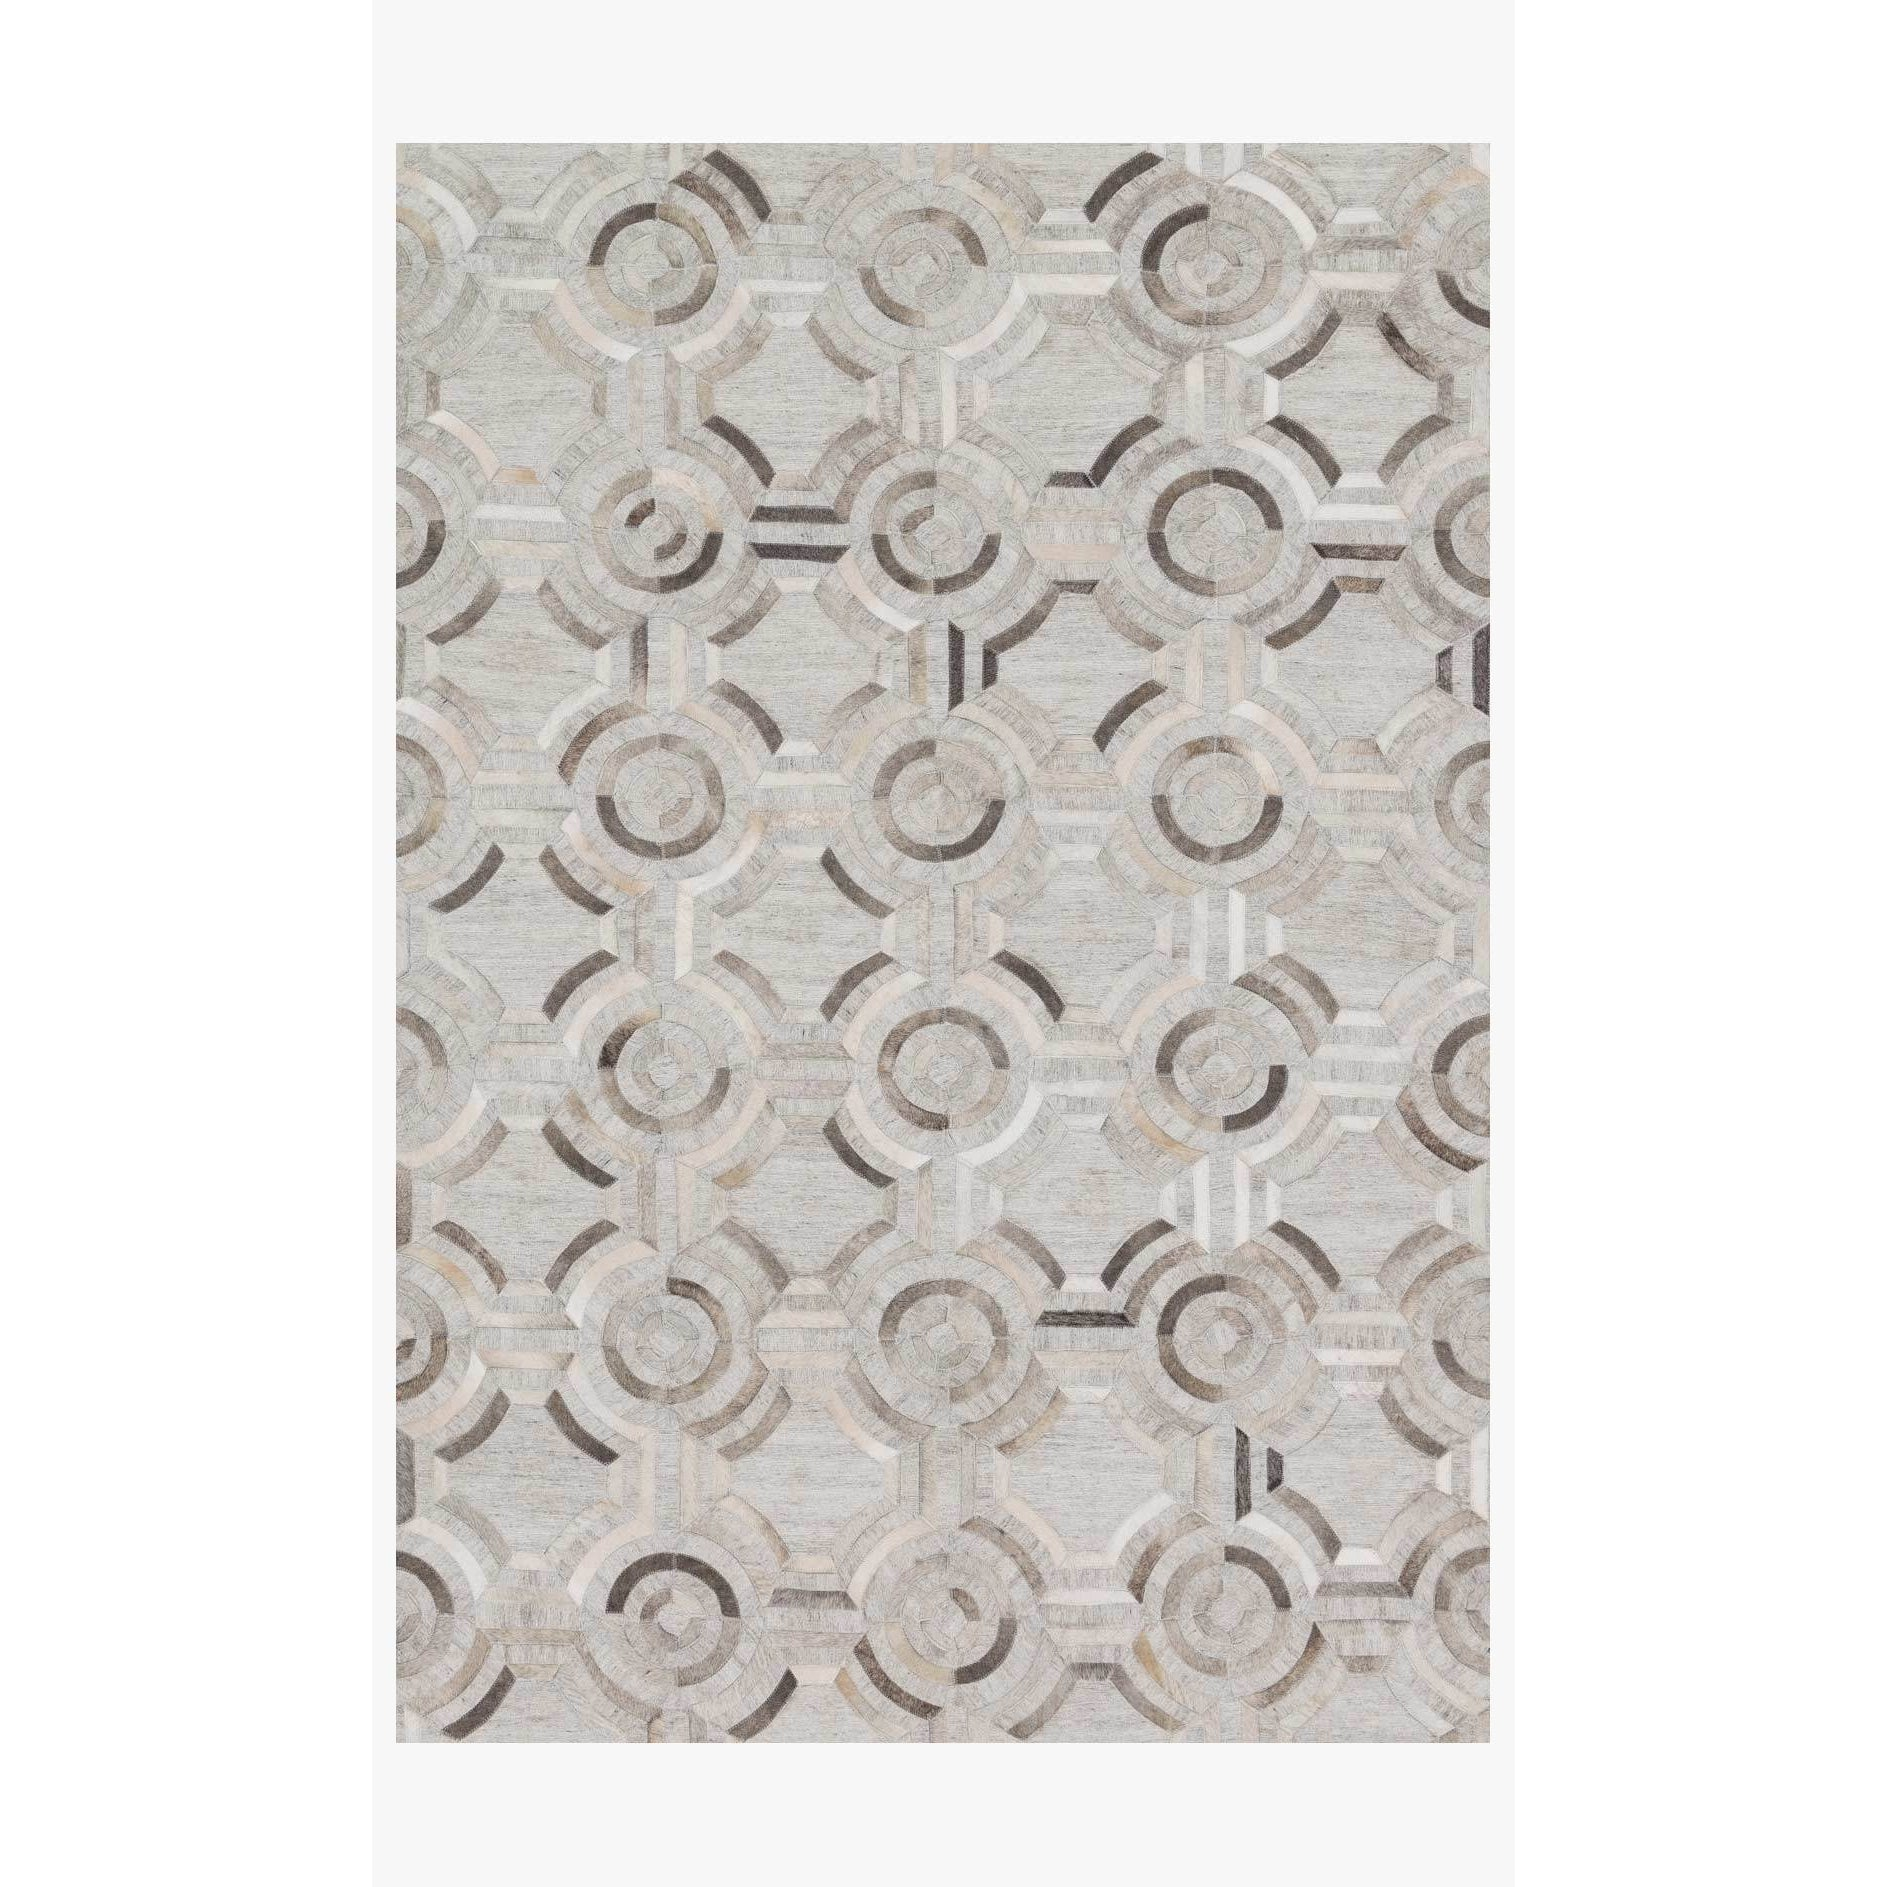 Dorado Rug by Loloi Rugs - DB-05 - Grey / Grey